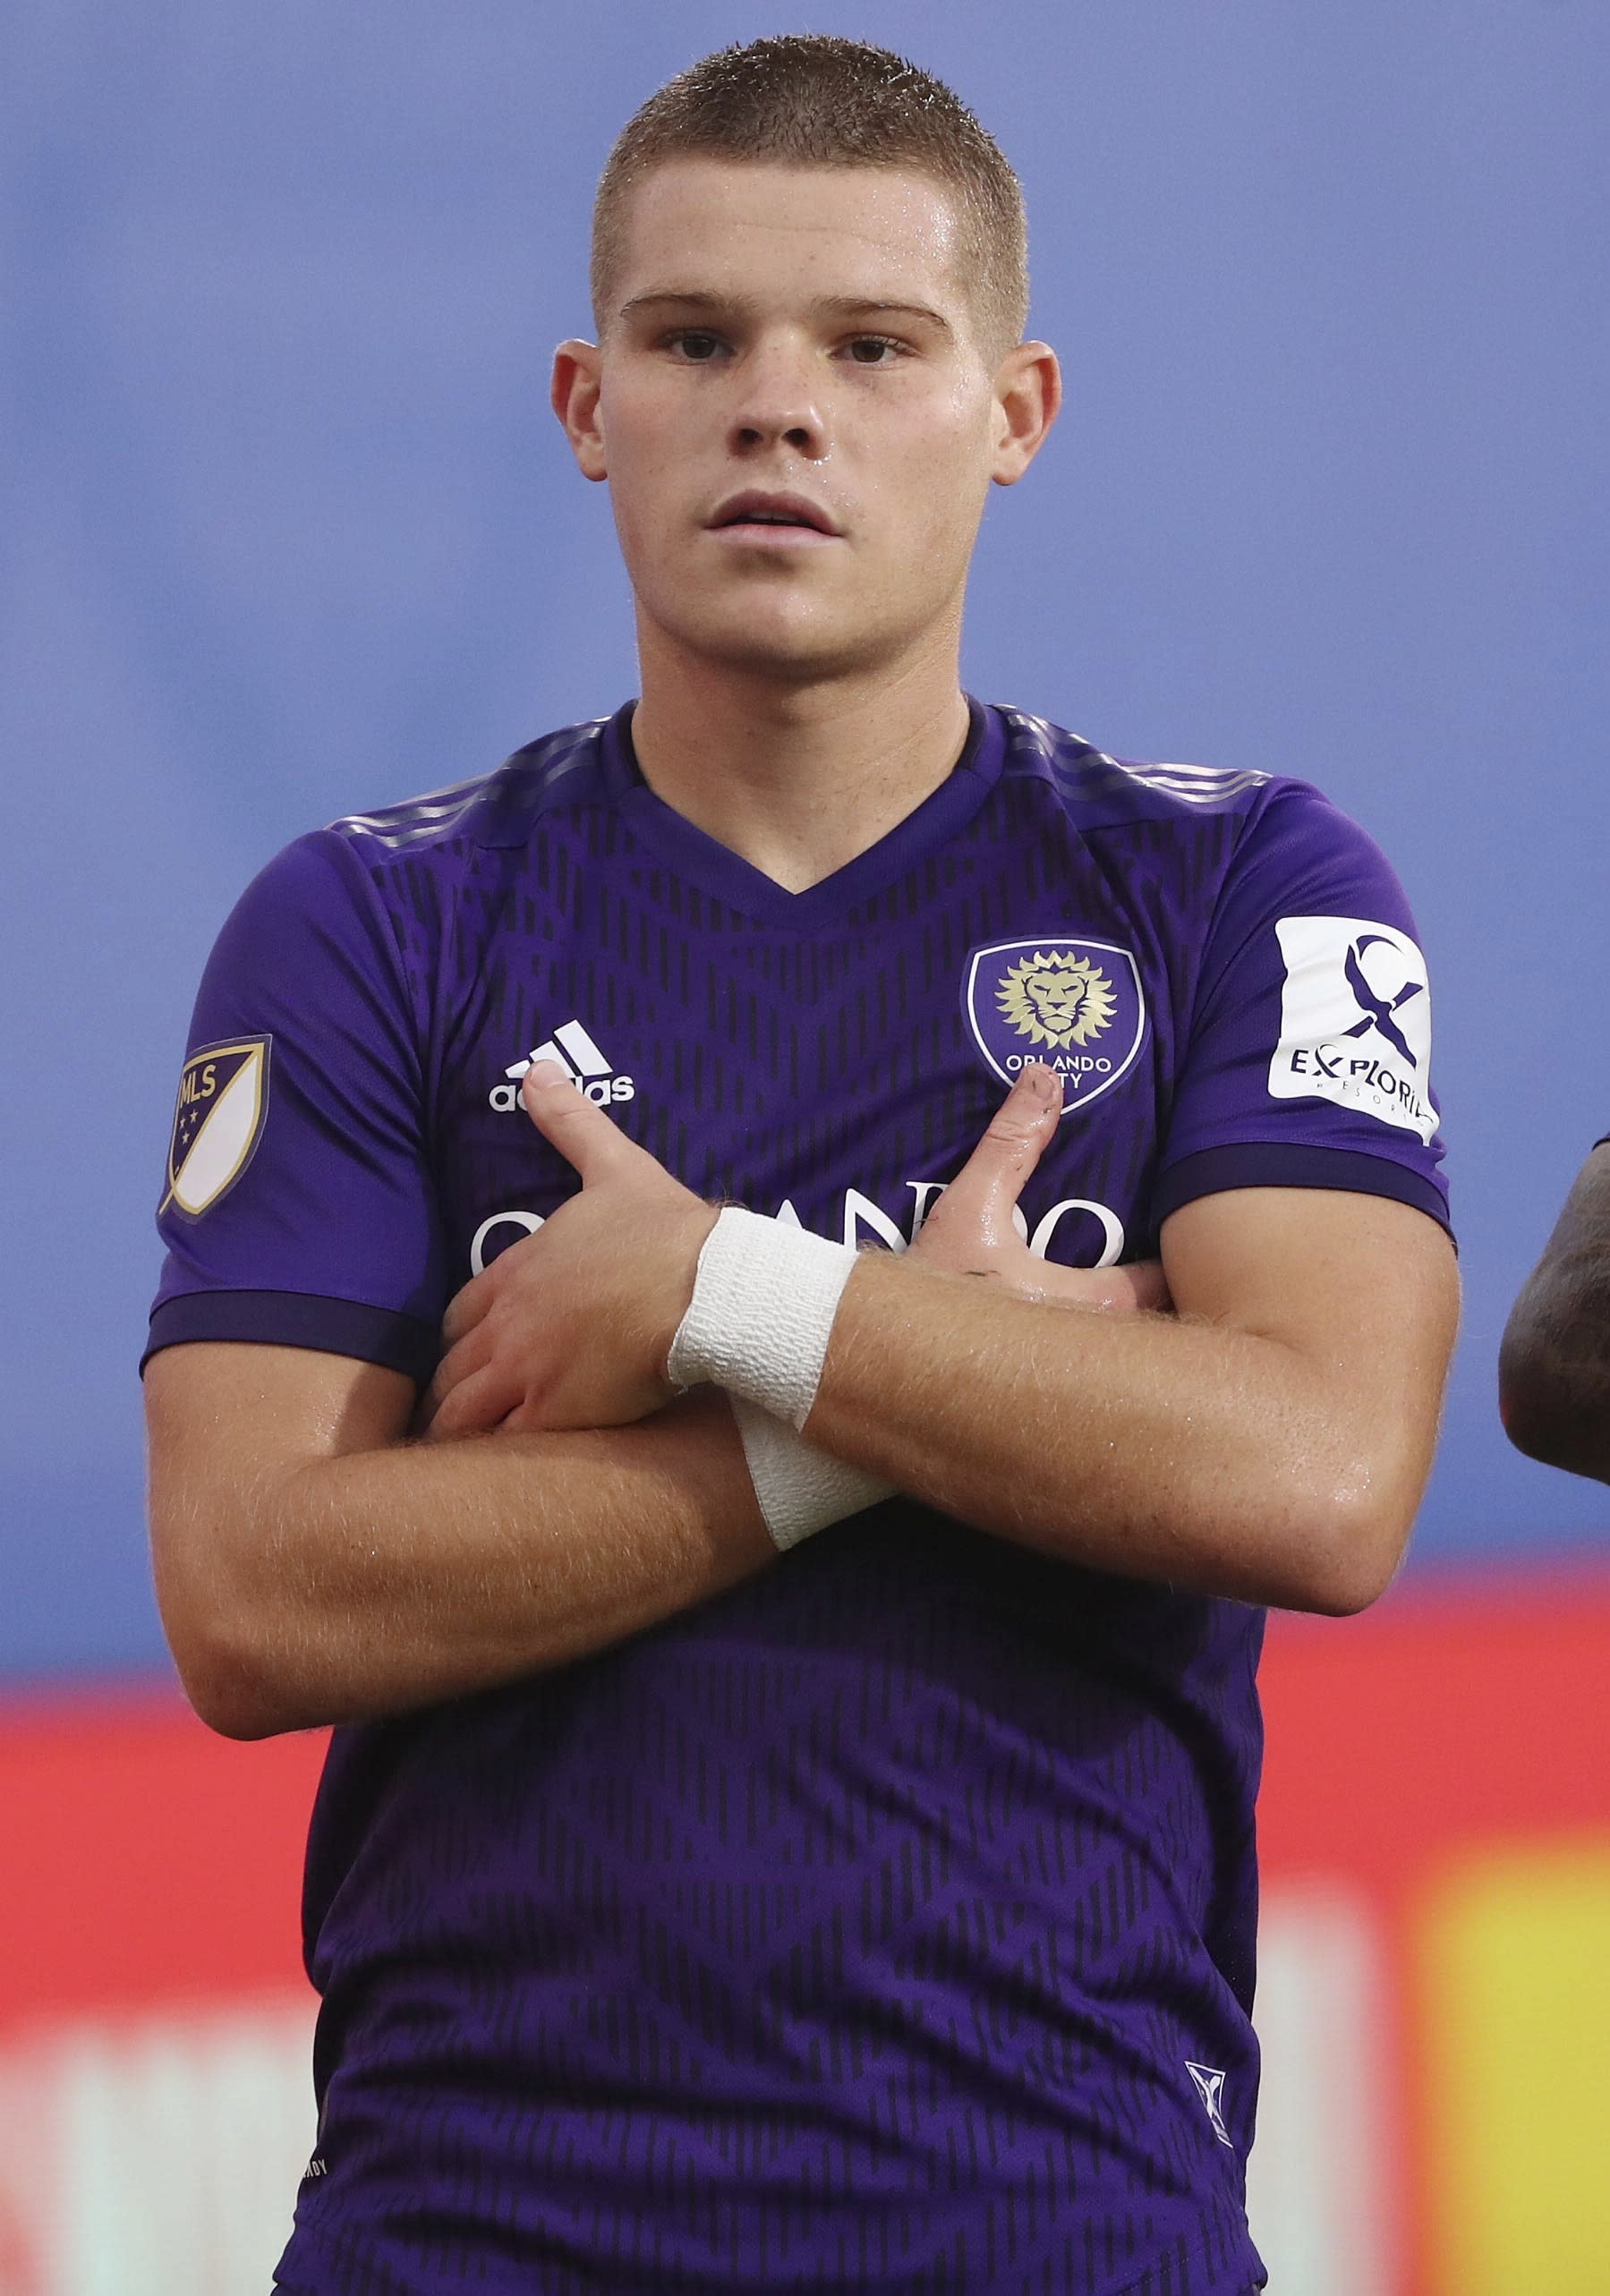 Orlando City's Chris Mueller stares at photographers with folded arms to celebrate after scoring a goal against New York City FC during an MLS is Back tournament soccer match, Tuesday, July 14, 2020, in Lake Buena Vista, Fla. (Stephen M. Dowell/Orlando Sentinel via AP)